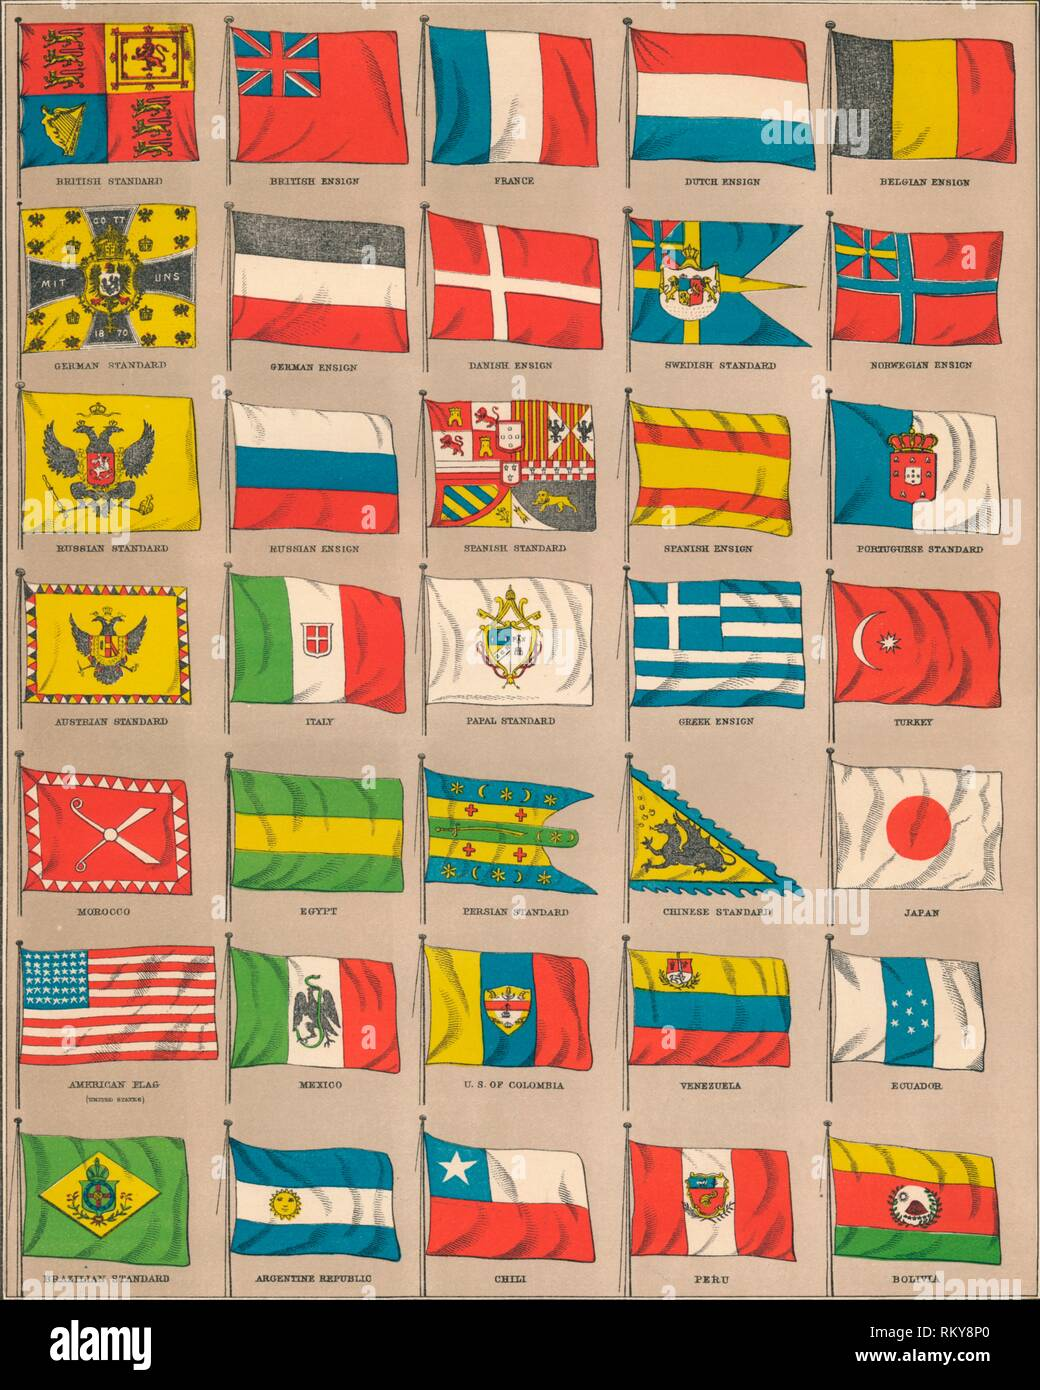 "Flags of the world, 1889. Flags, standards and ensigns. From ""Encyclopaedia Britannica, Ninth Edition"". [1889] - Stock Image"